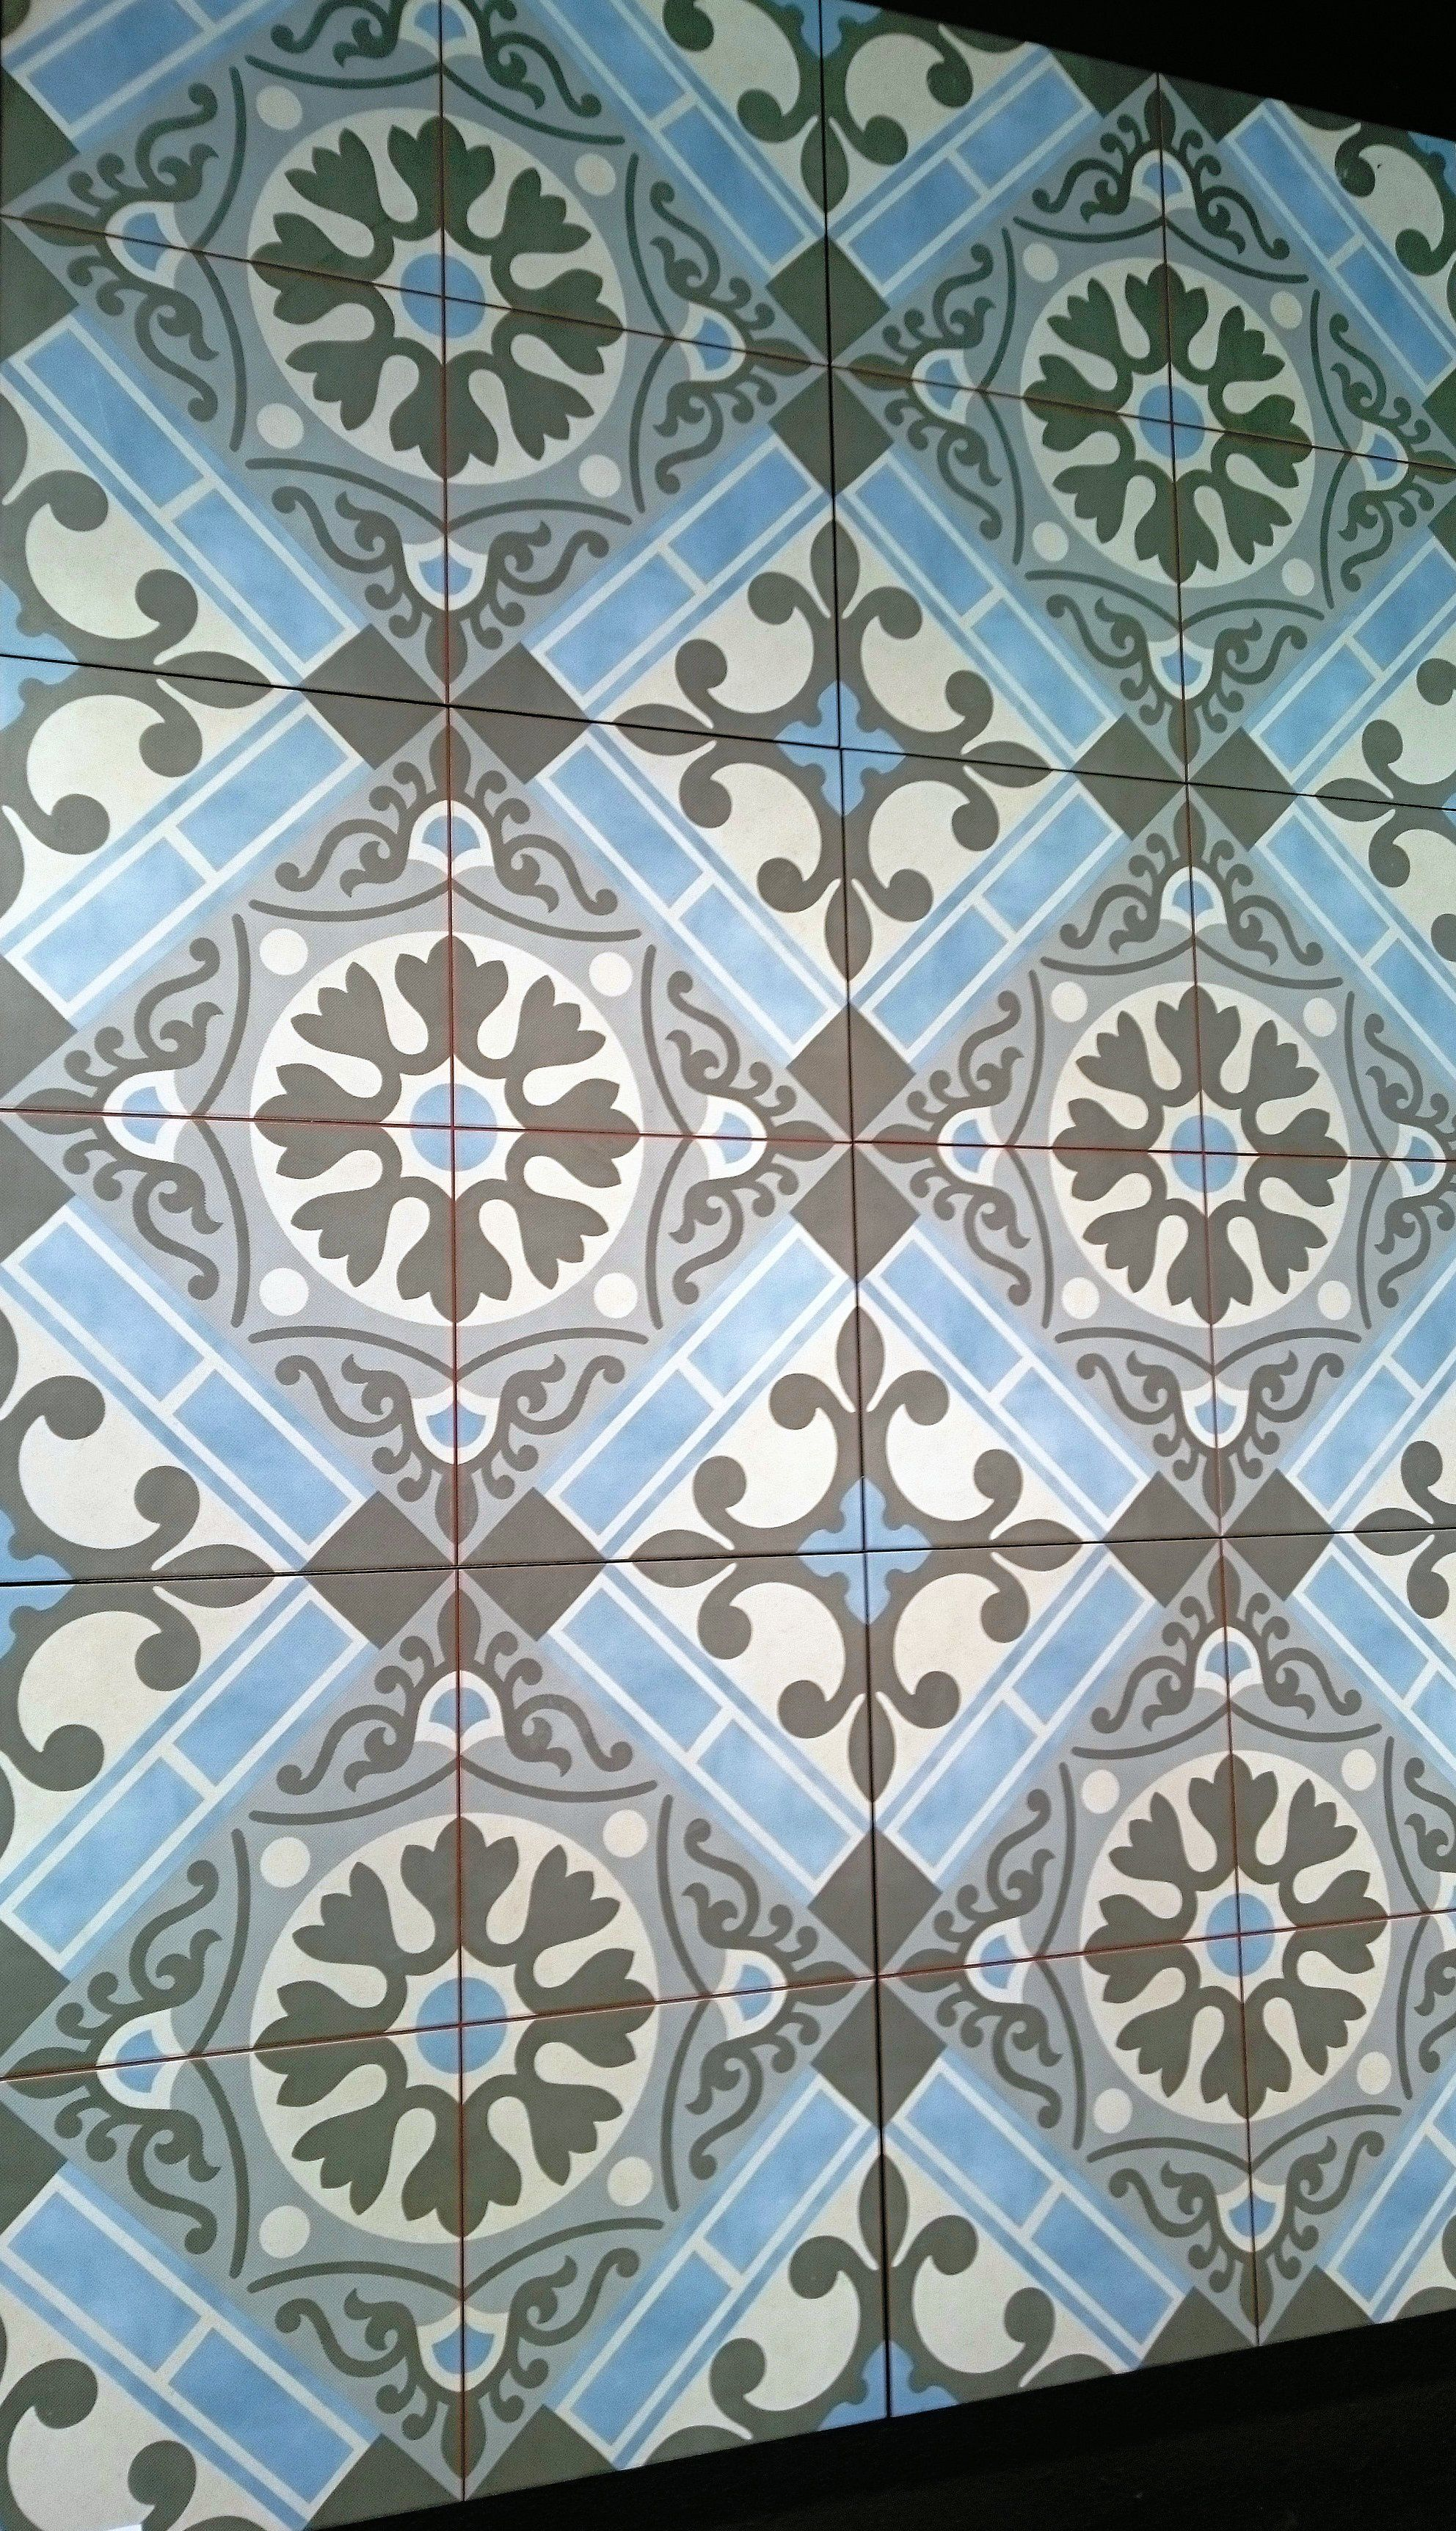 Replica encaustic tiles from spain these hard wearing ceramic tiles replica encaustic tiles from spain these hard wearing ceramic tiles require no sealing or maintenance dailygadgetfo Images